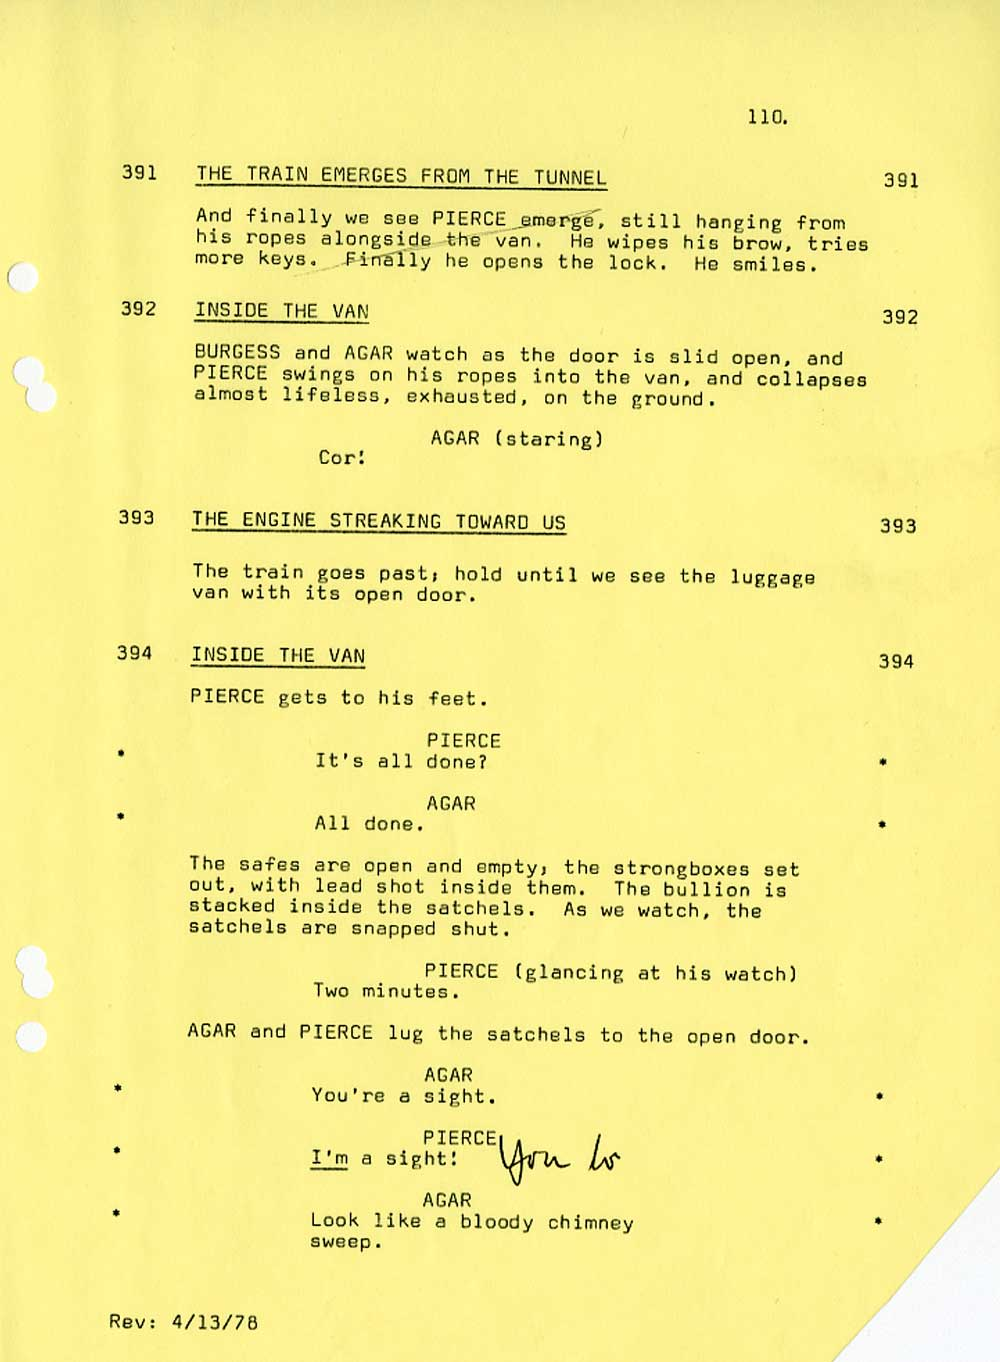 The Great Train Robbery Screenplay - Train Sequence